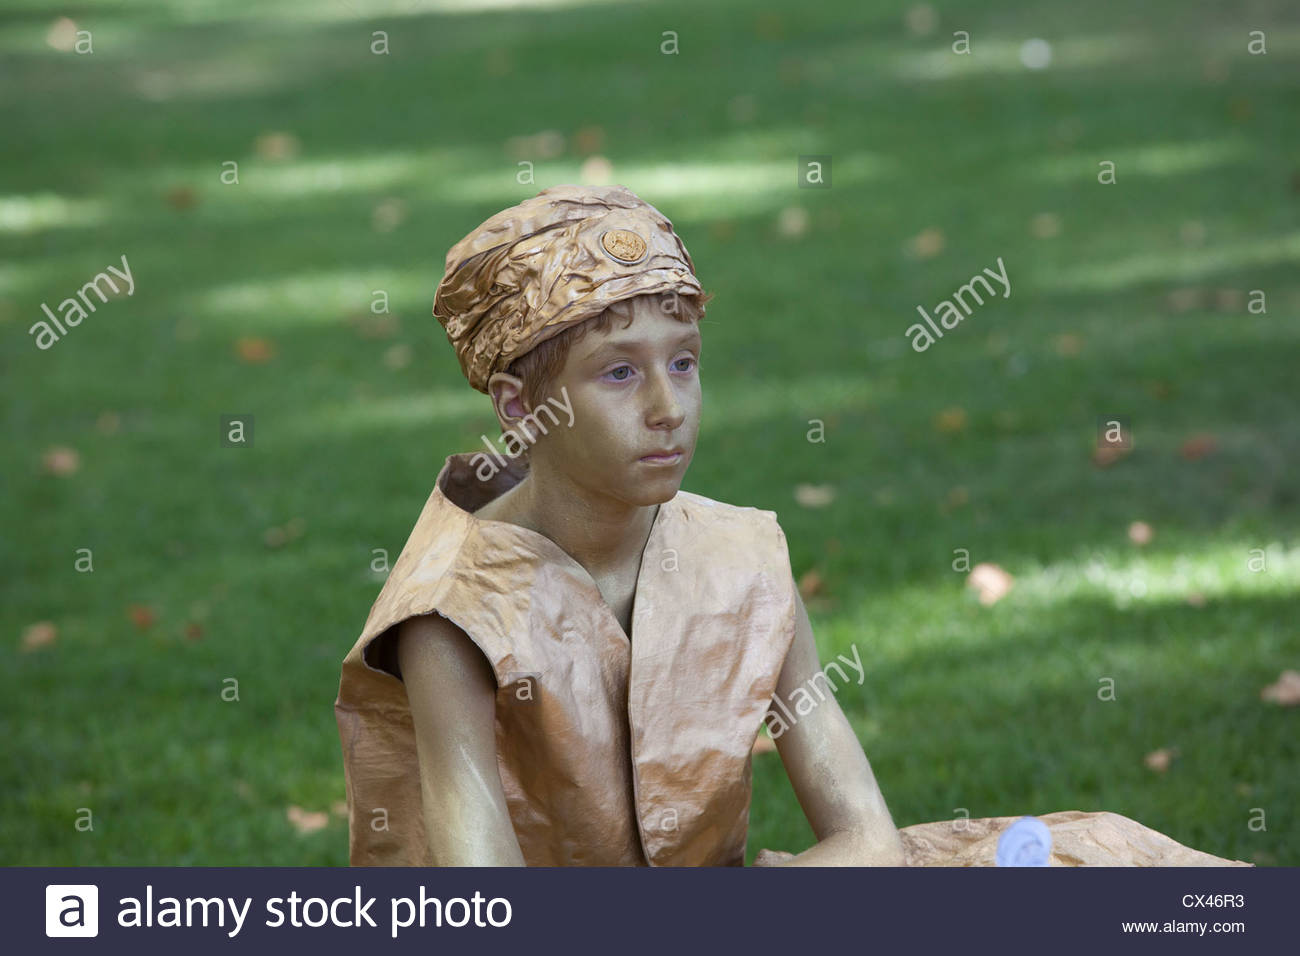 Living statue from the living statue festival in Tomar, Central Portugal. - Stock Image